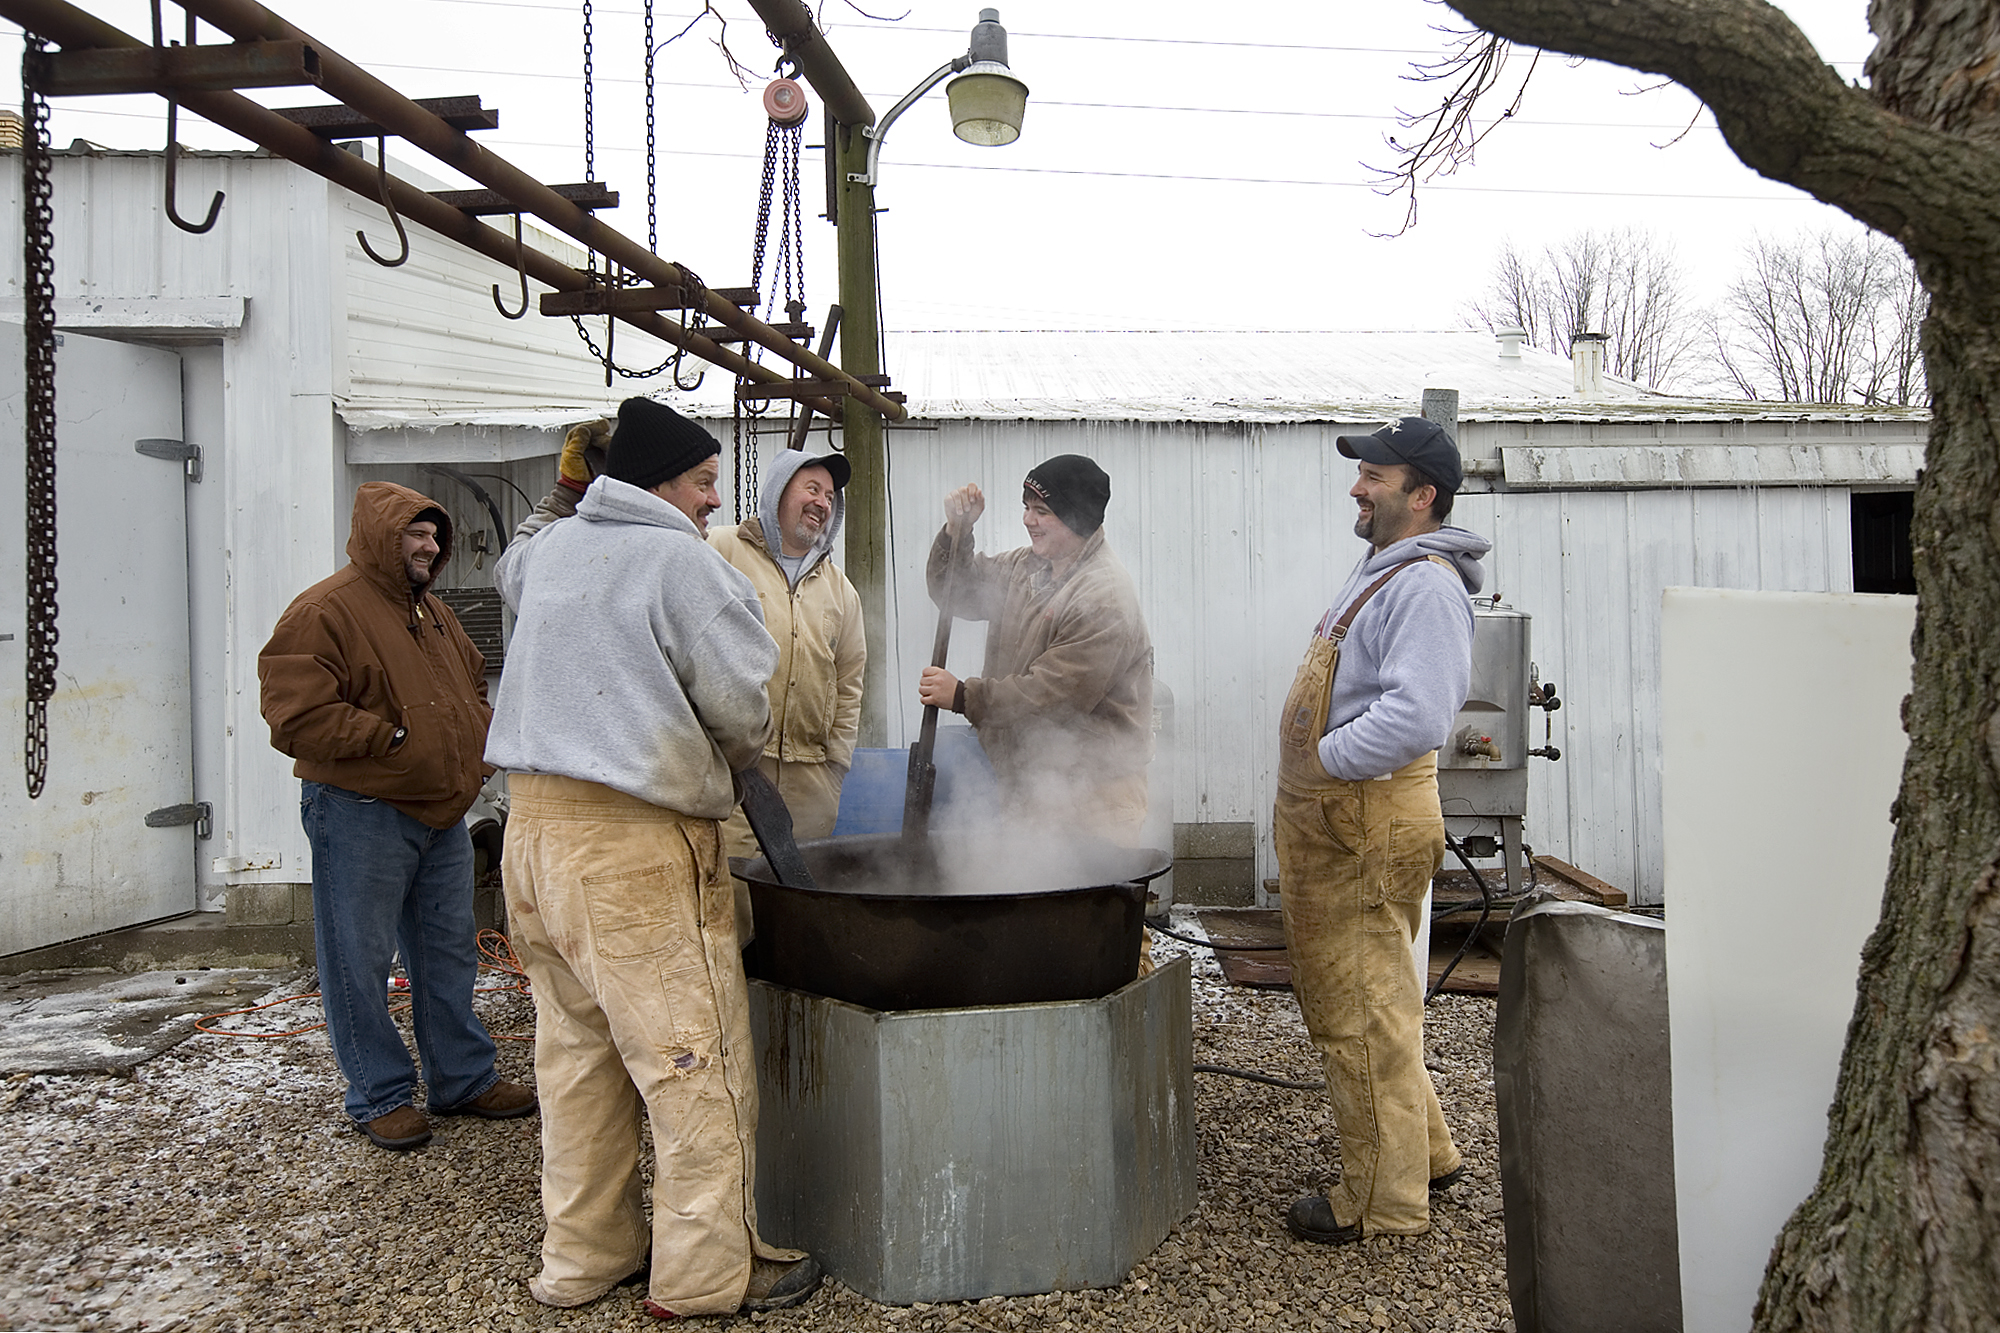 Rendering the lard was one of the last tasks the Schwenk family finished before the final cleanup began. The rendering process requires the lard to be constantly stirred, so Mark Kordes of Jasper, clockwise from front left around the kettle, Roy Main of Ireland, Nicholas Hoffman of Birdseye, 16, and Nathan Verkamp of Jasper took turns stirring the lard. Josh Dahmer of Evansville, back left, watched and helped stir as well.